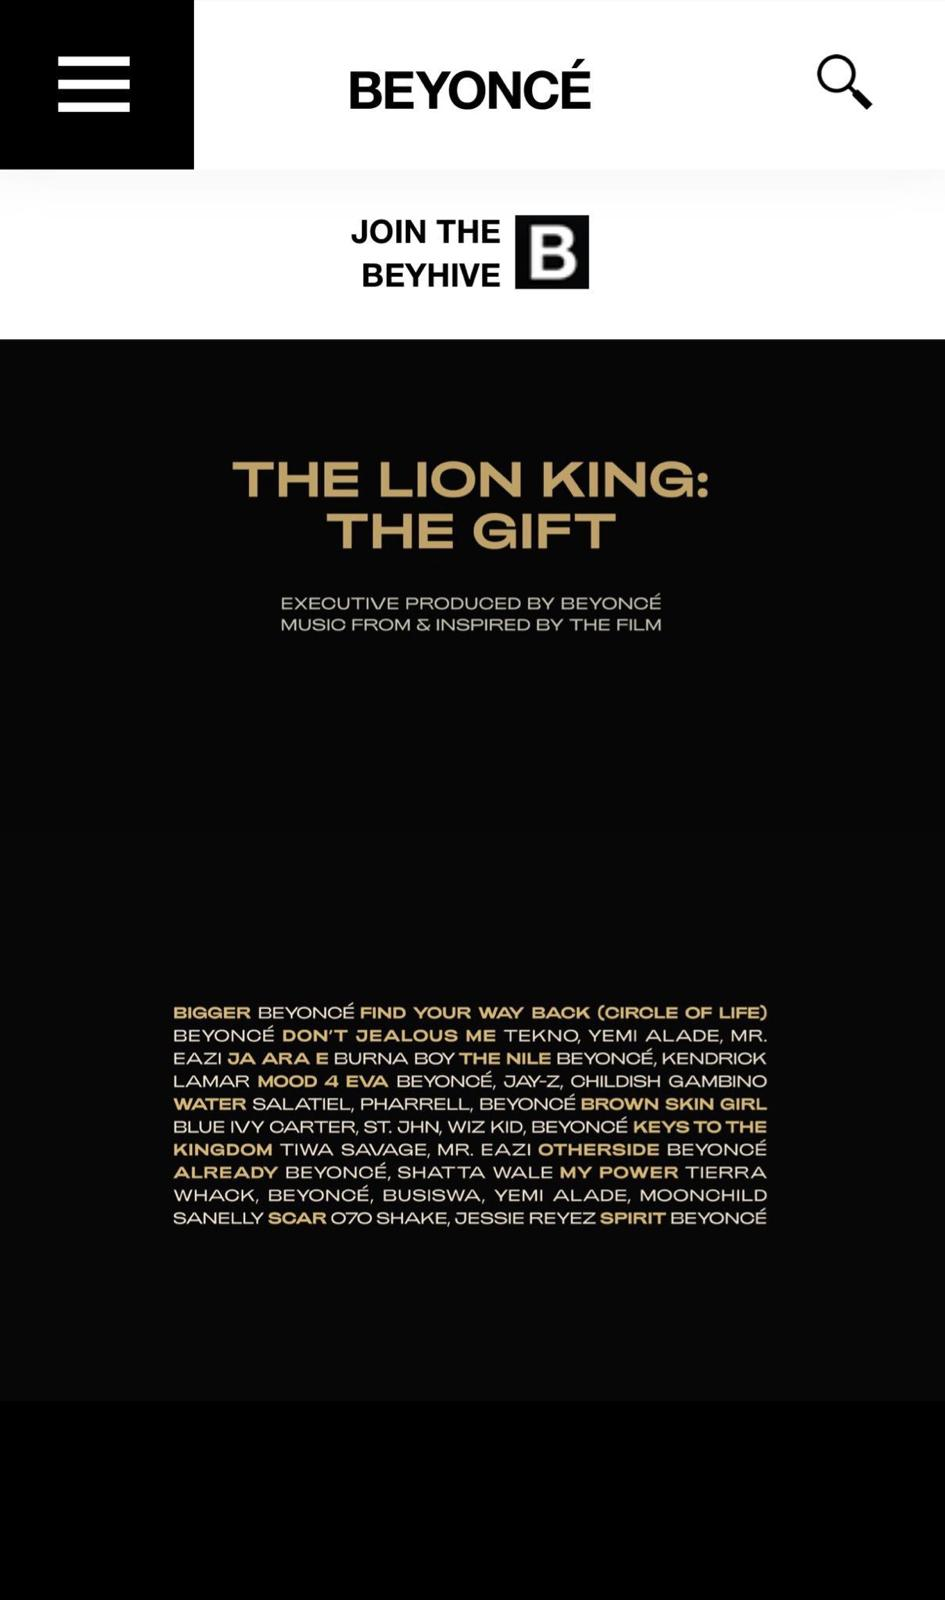 The Lion Gift: The Gift